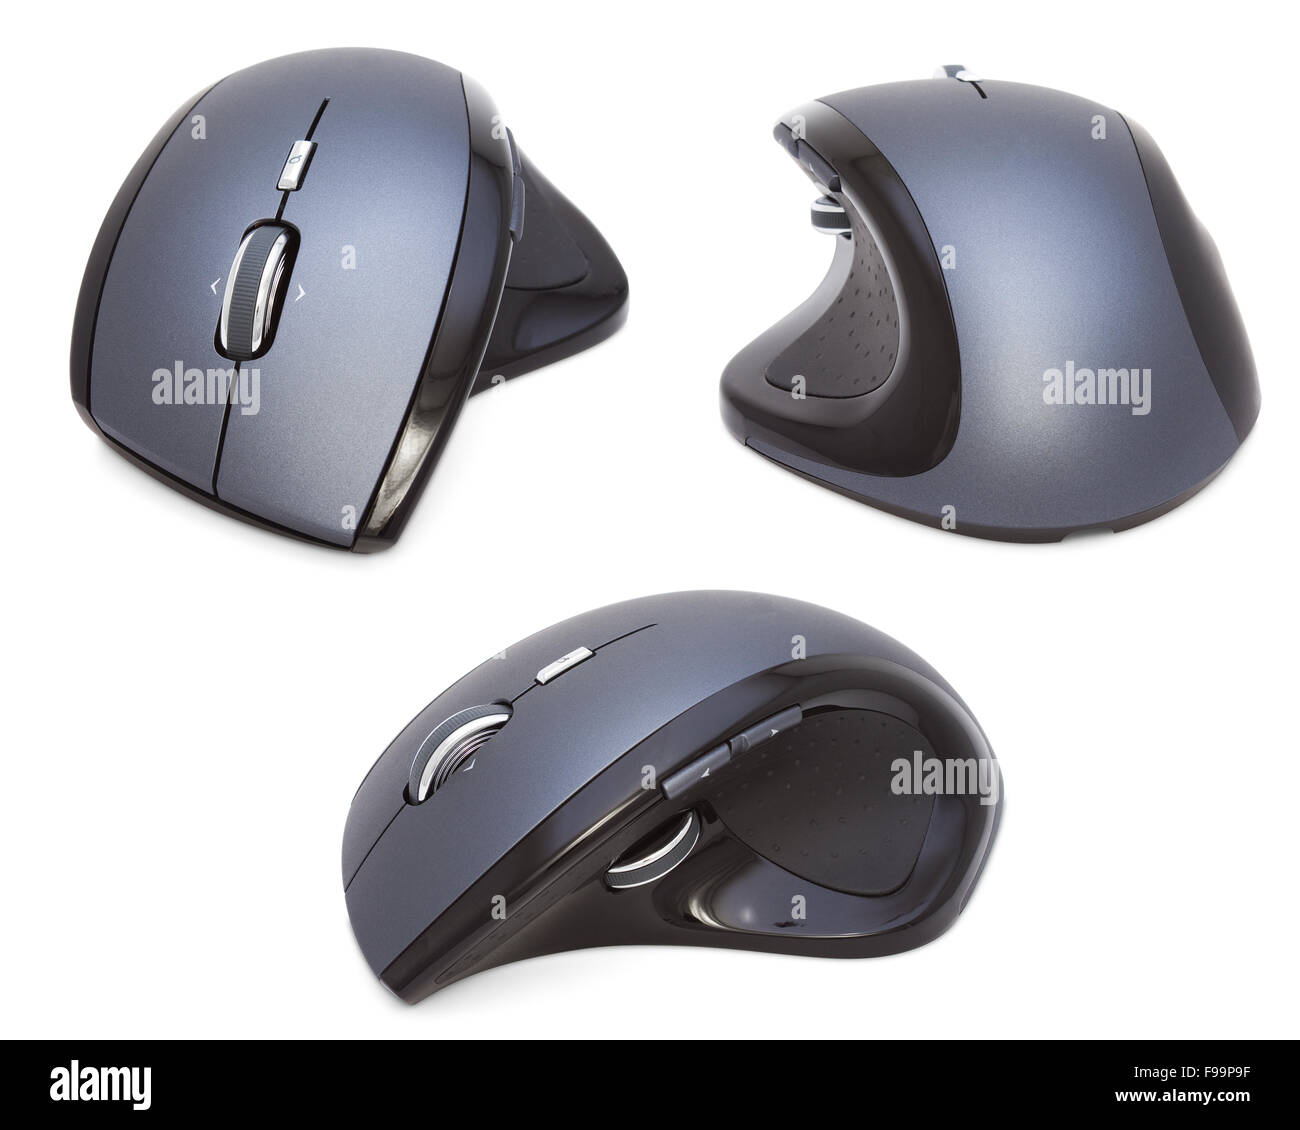 Three Modern Ergonomic Mouses isolated - Stock Image